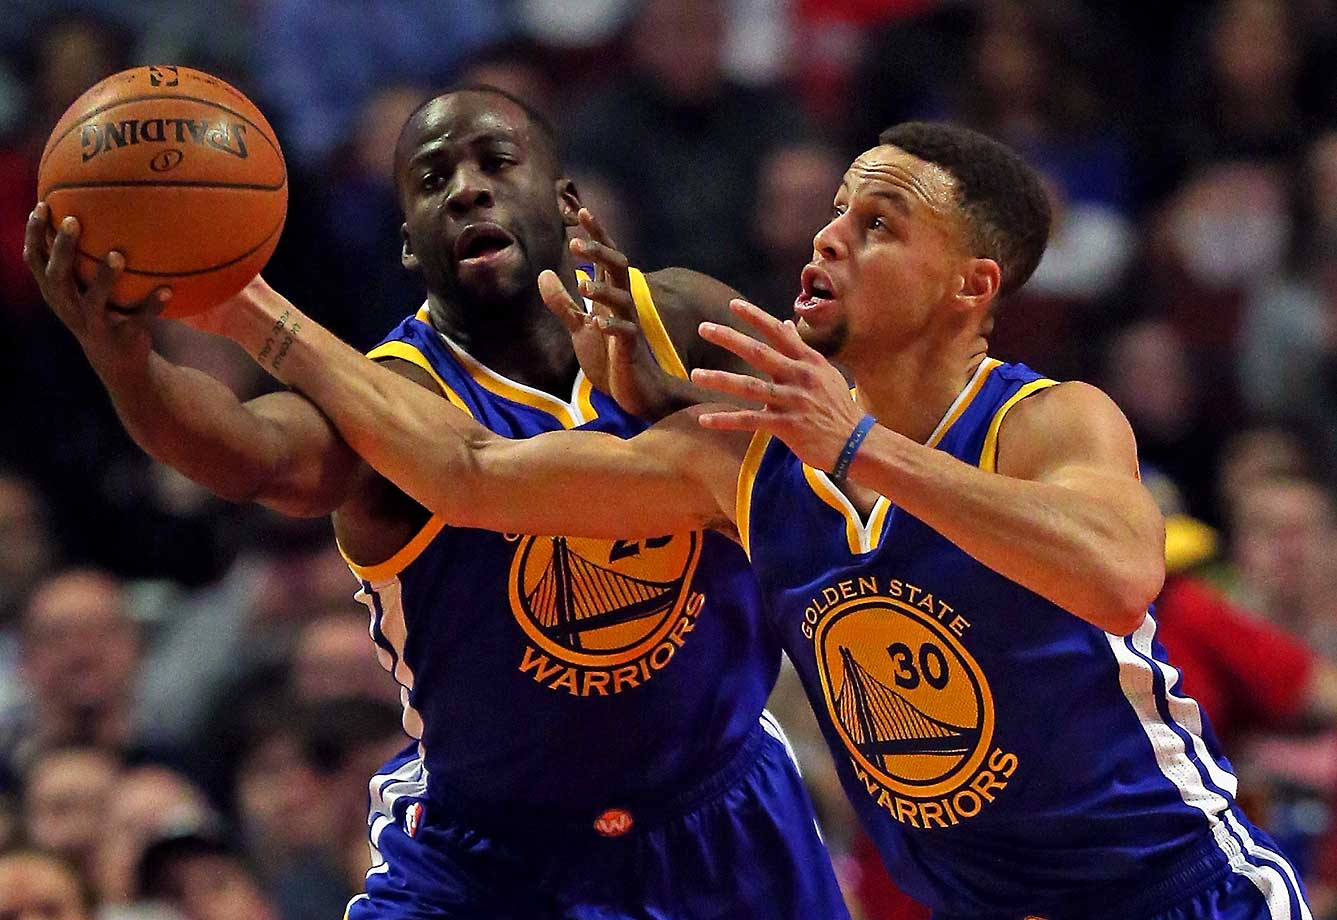 Draymond Green and Stephen Curry of the Golden State Warriors go for a rebound against the Chicago Bulls at the United Center in Chicago.